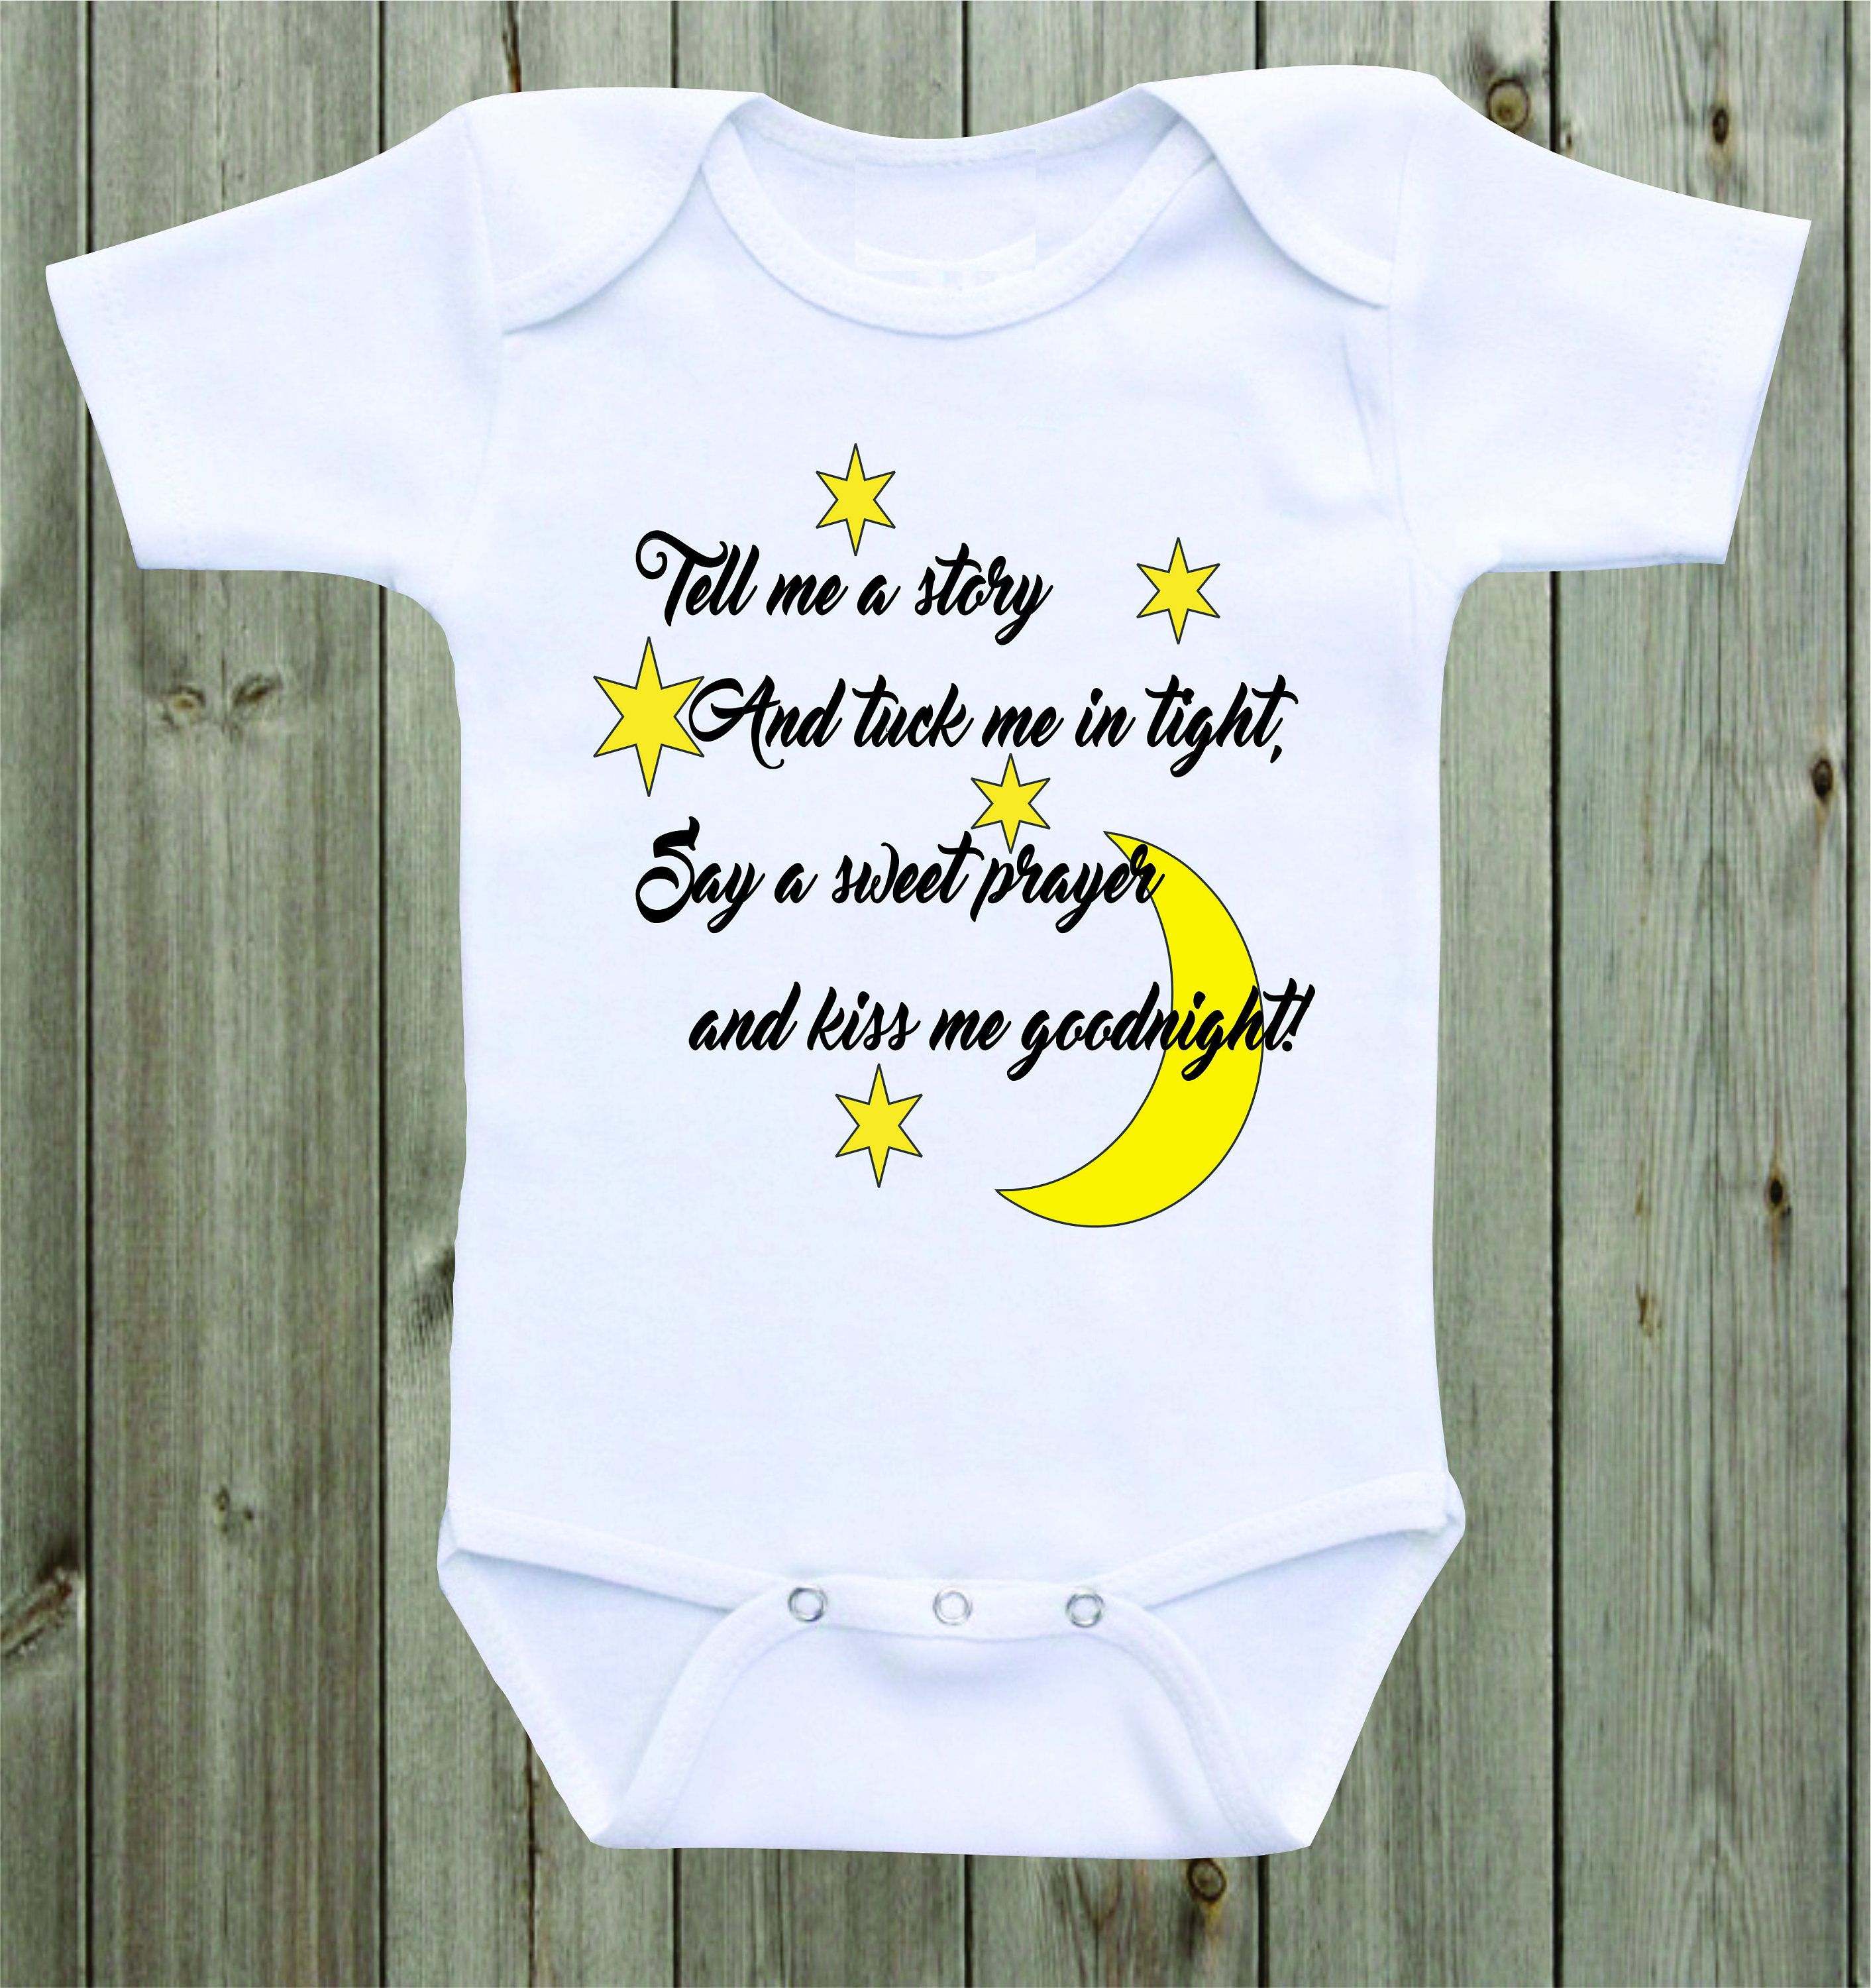 Tell me a story Baby Onesie Unisex Baby Clothing Gender ...